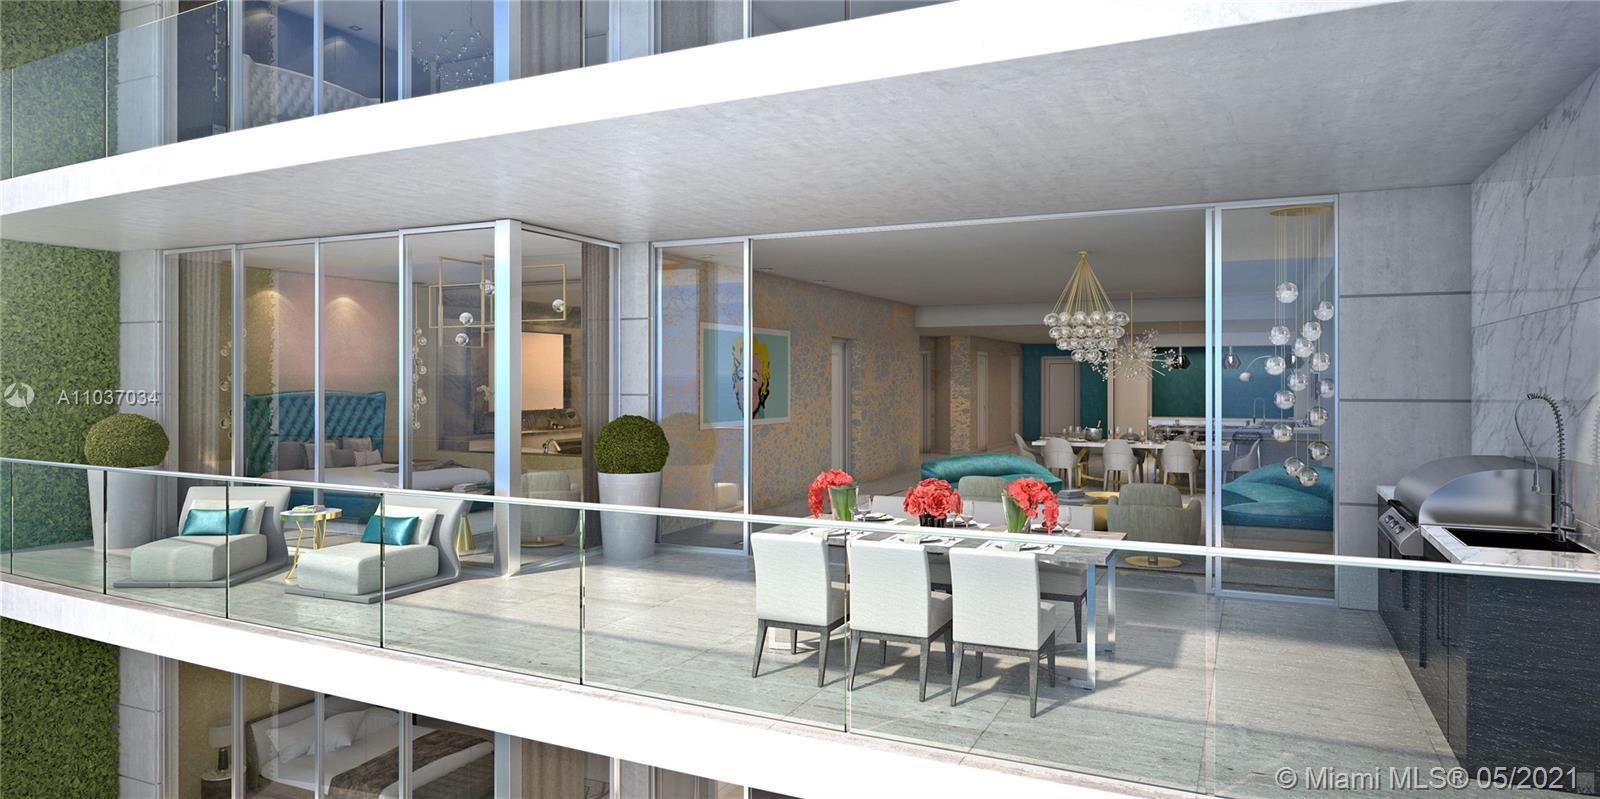 4 BEDROOM 5 BATH   3287 SQFT  FURNISHED BY FENDI AND LUXURY LIVING , BE APART OF THE WORLDS FINEST R